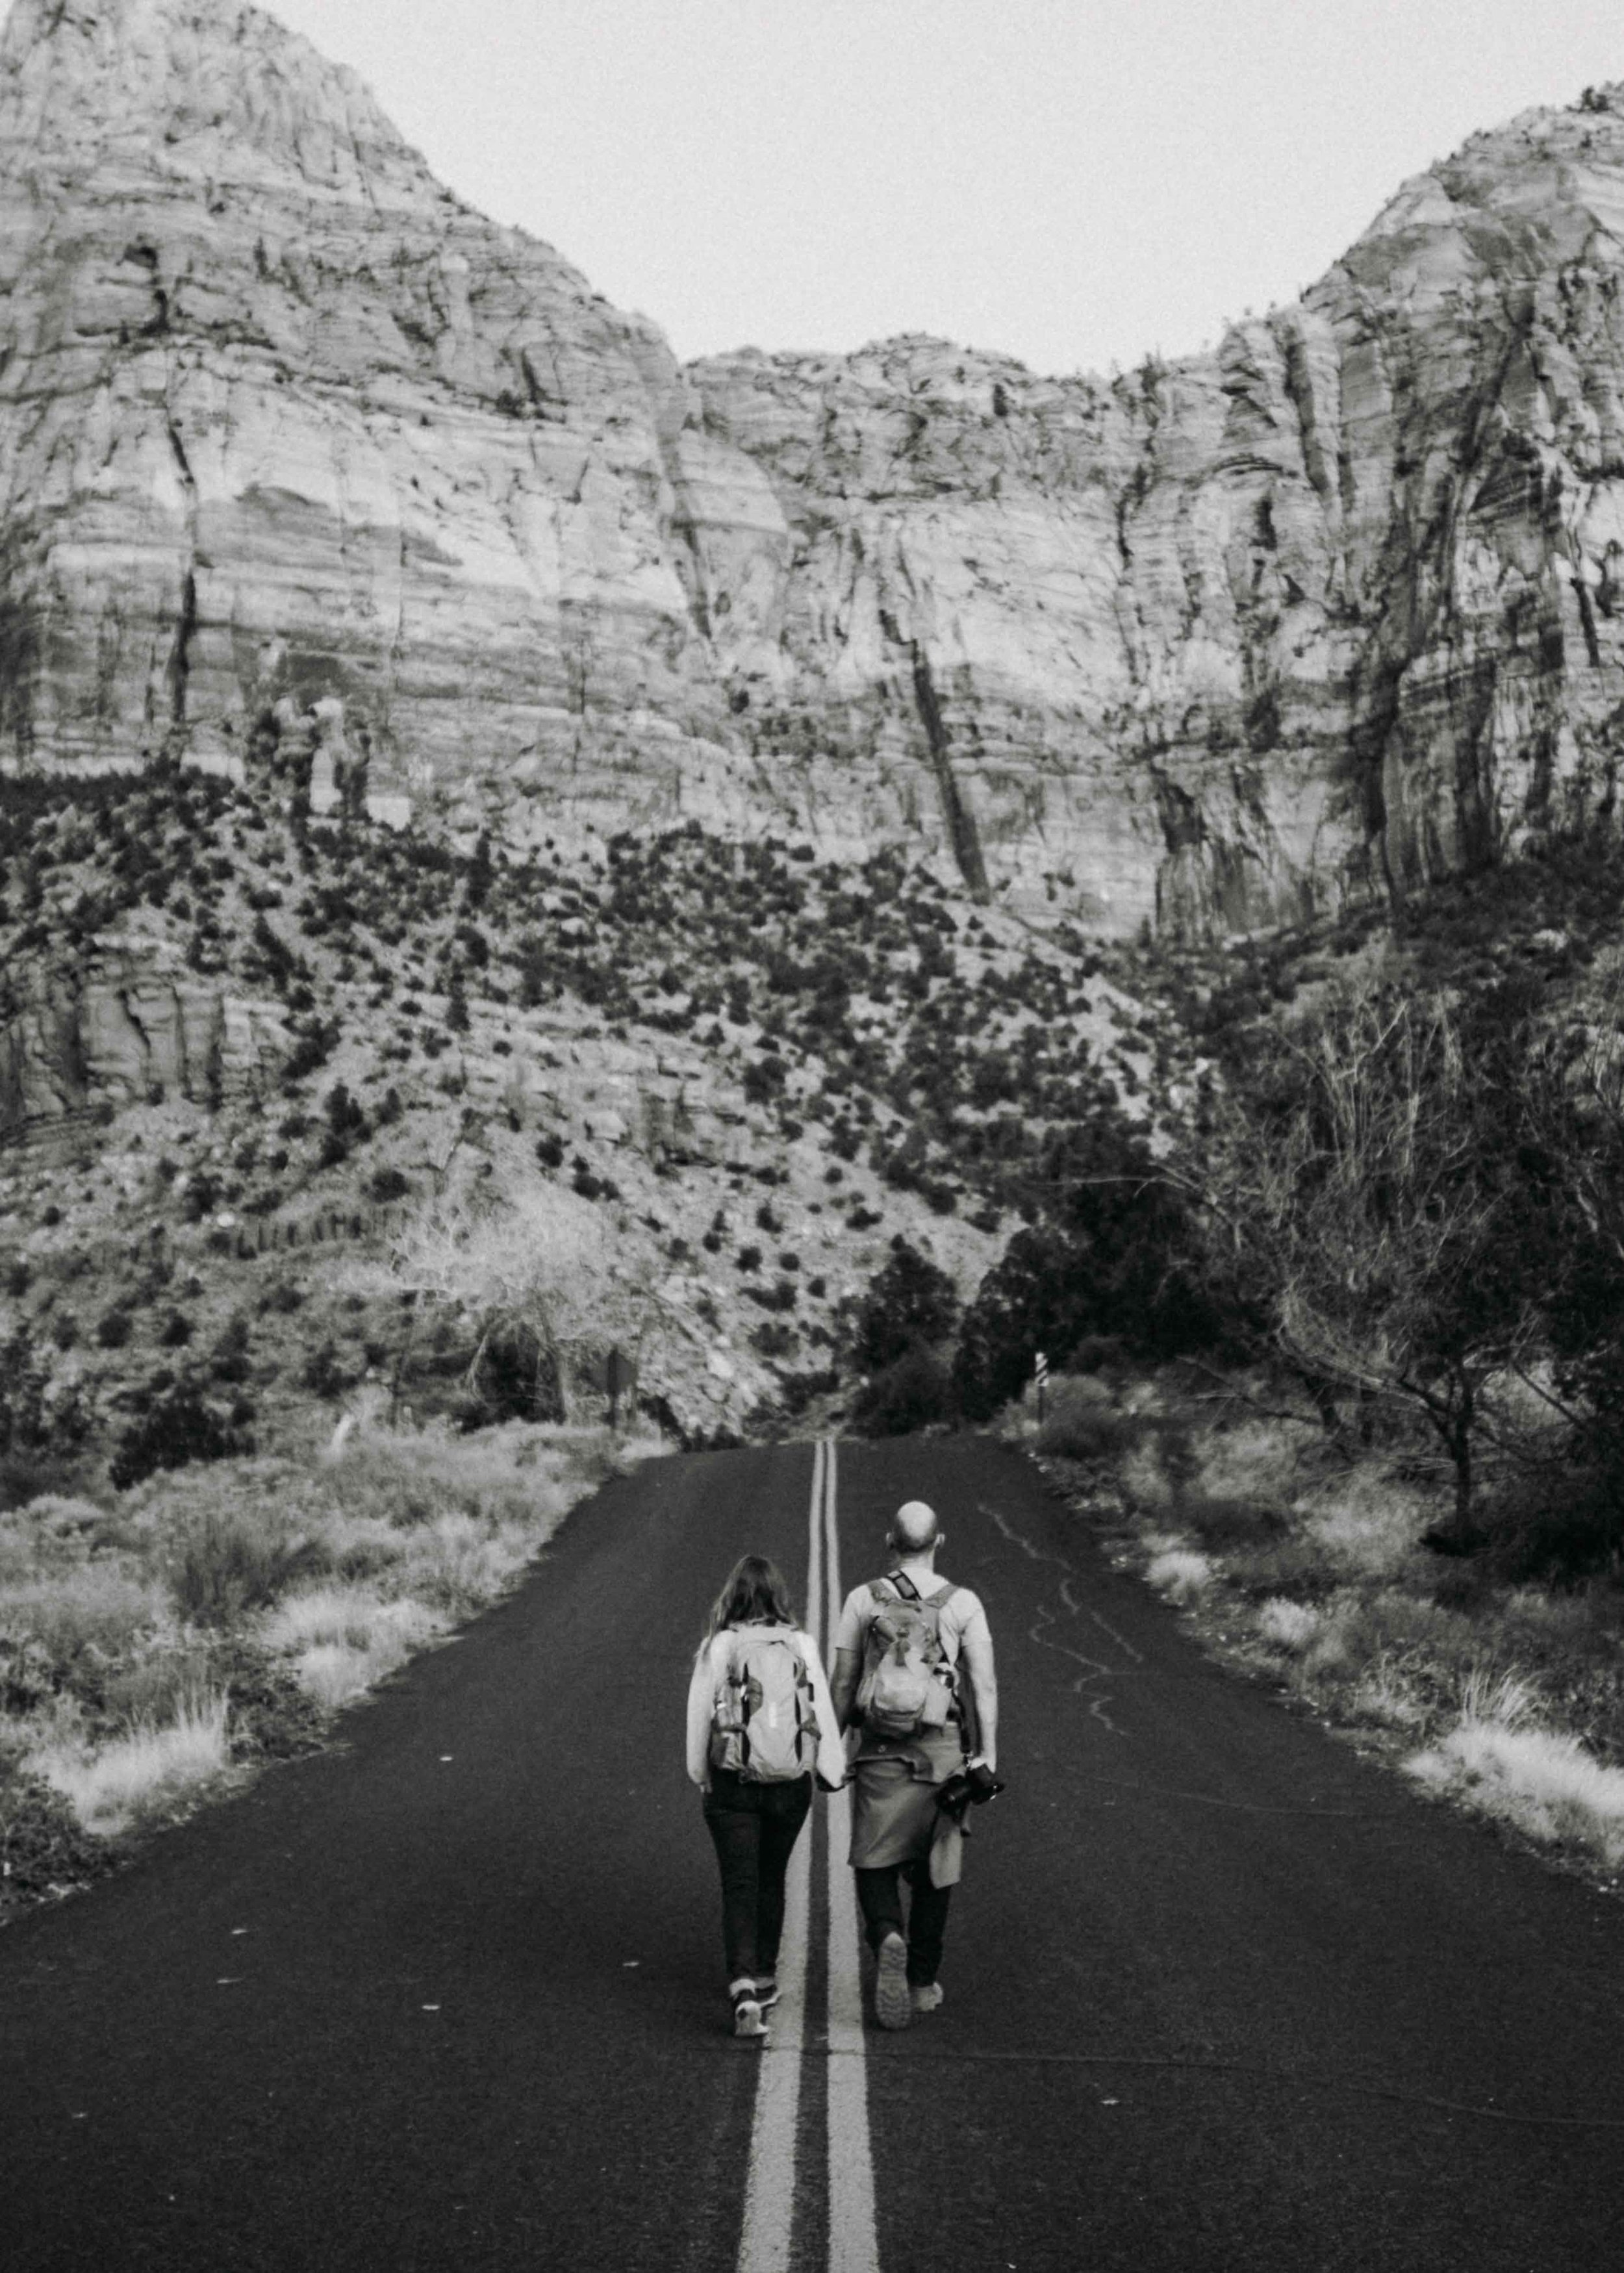 zion_national_park_utah_wedding_photography_engagement-3413.JPG